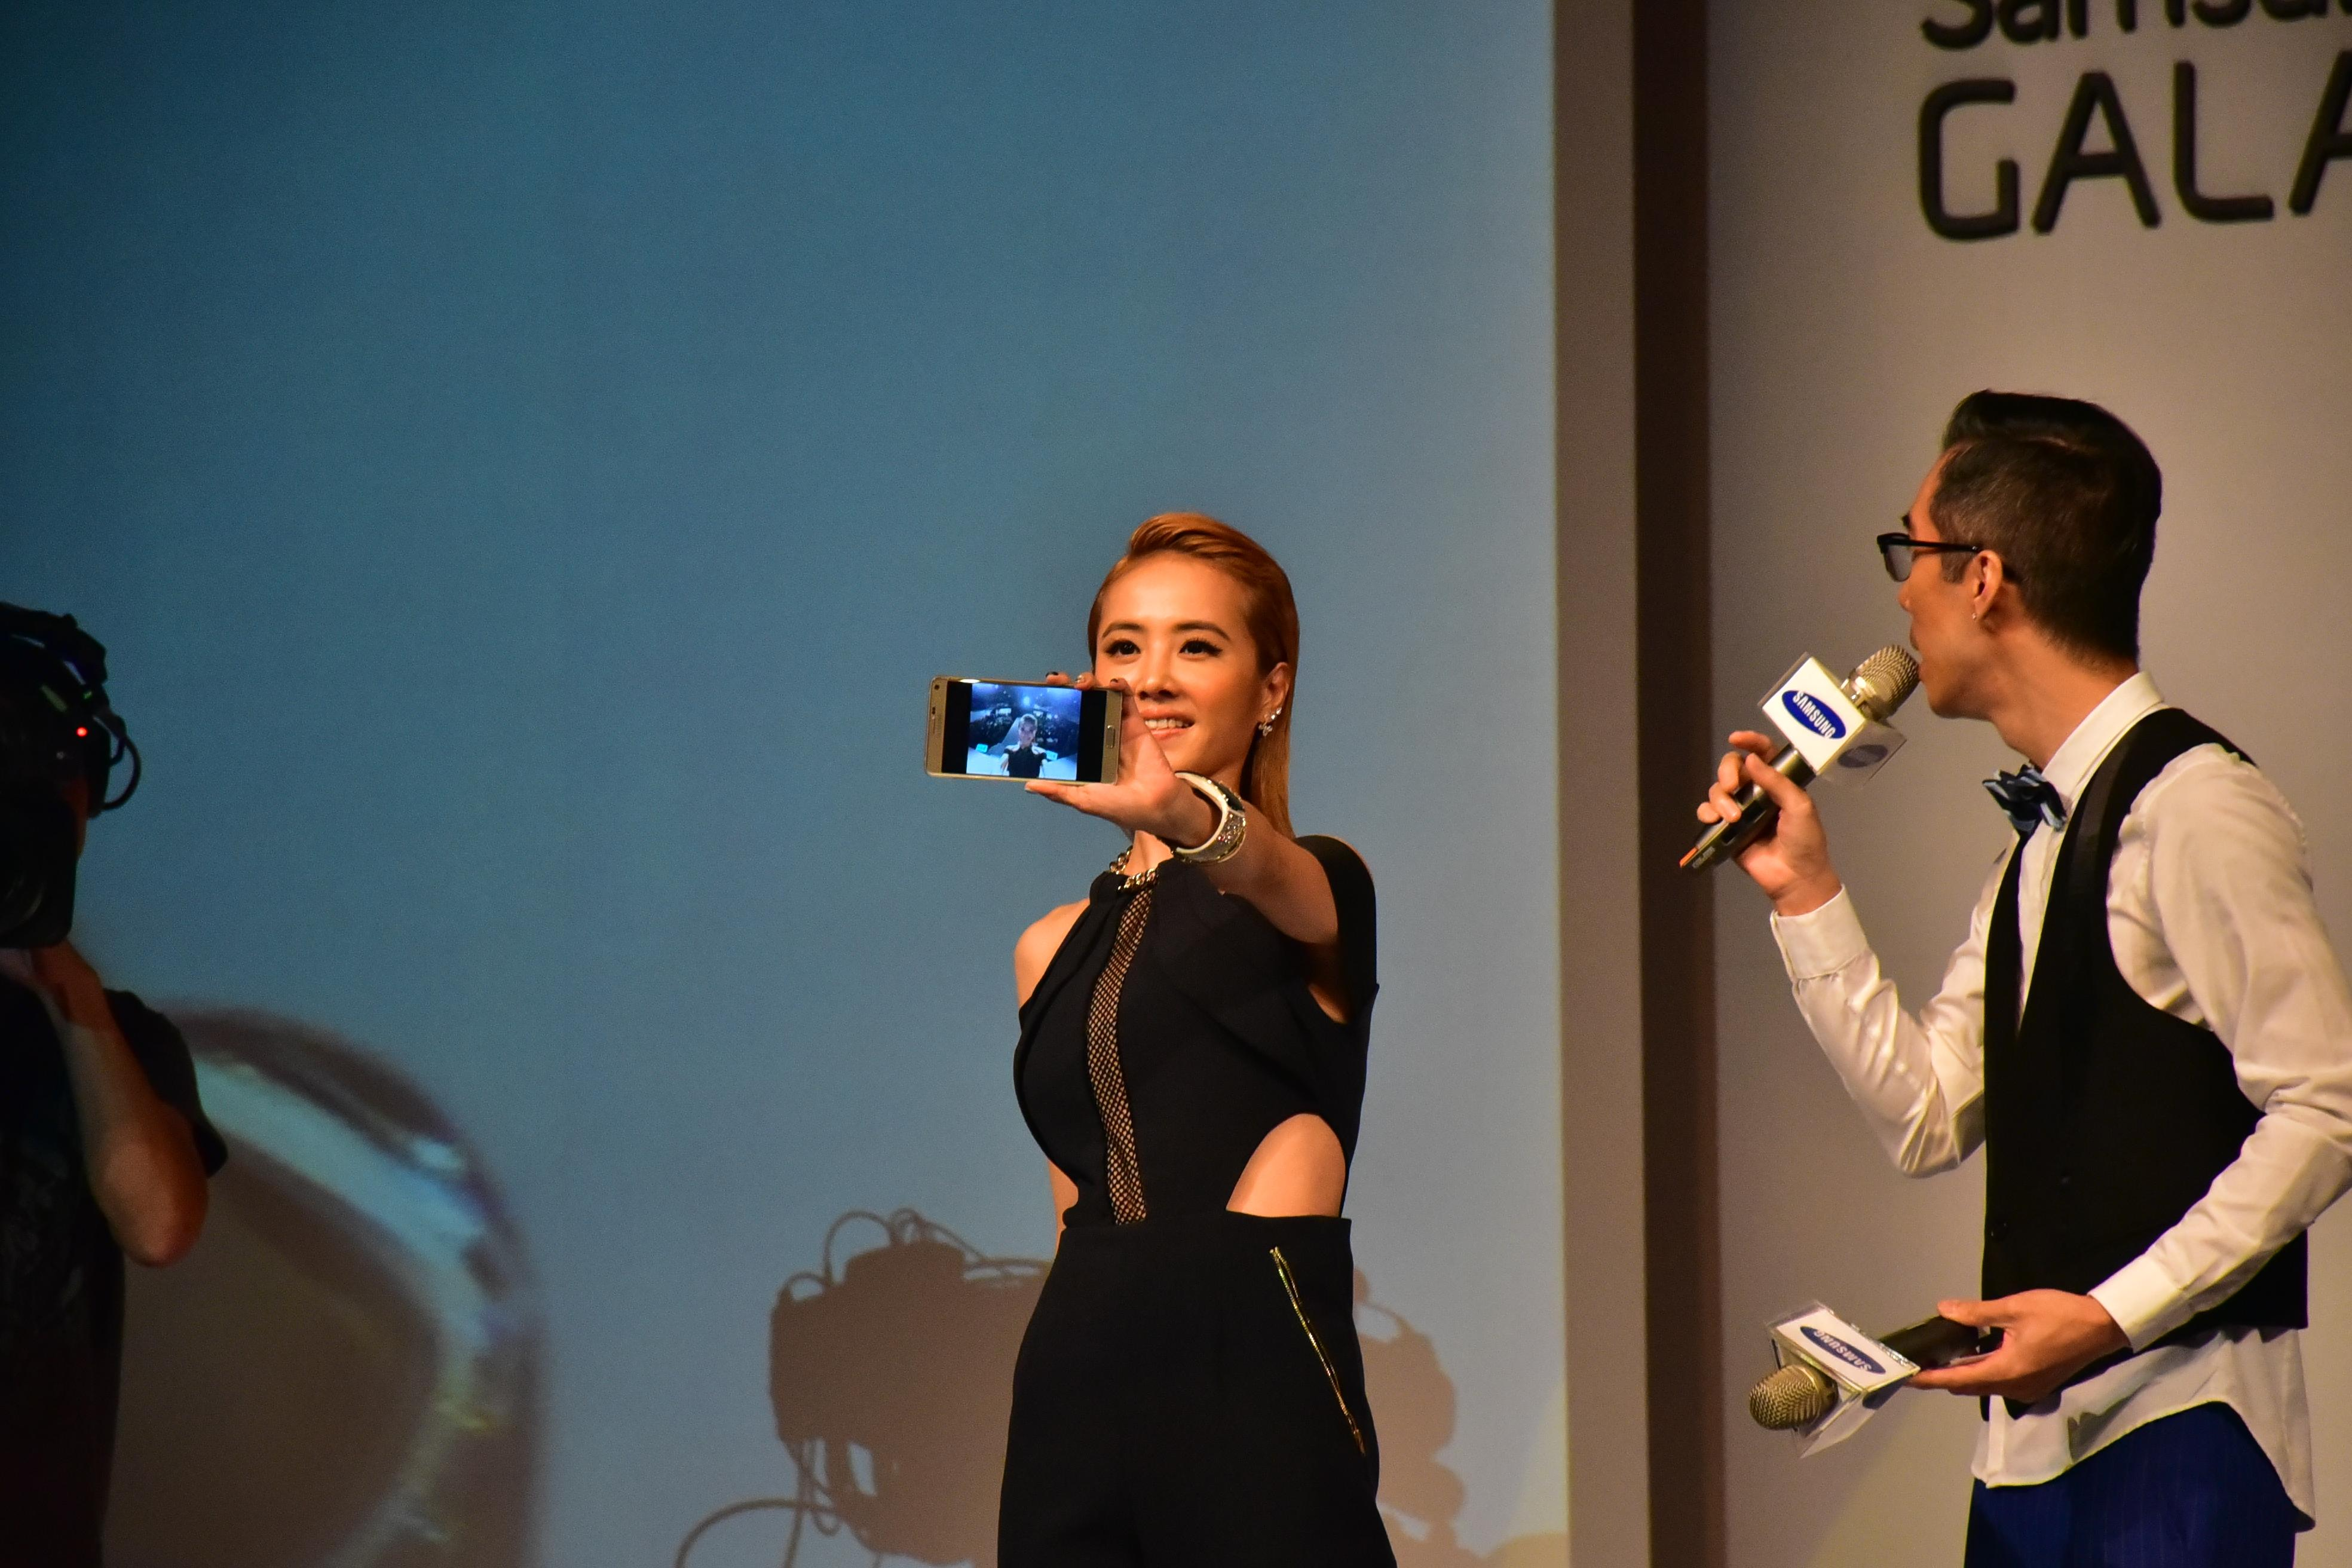 SAMSUNG GALAXY Note 4 with 歌后 蔡依林 !! - XFastest - DSC_2534.JPG